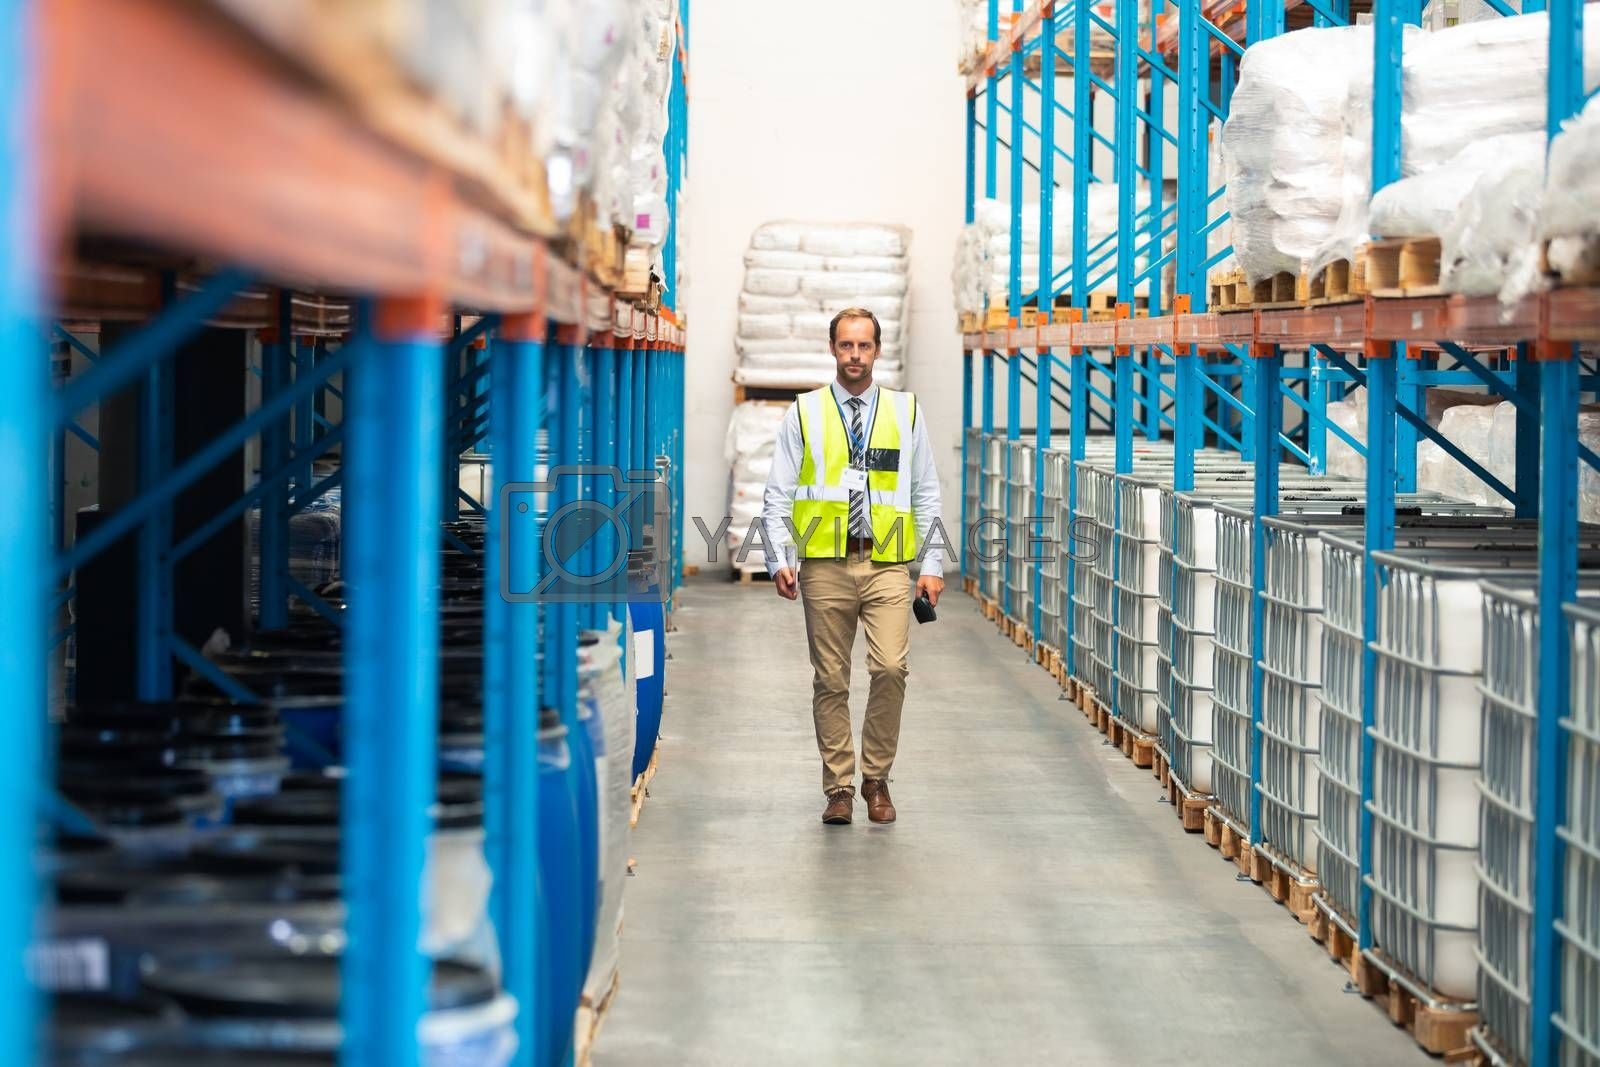 Front view of Caucasian male supervisor walking in aisle of warehouse. This is a freight transportation and distribution warehouse. Industrial and industrial workers concept